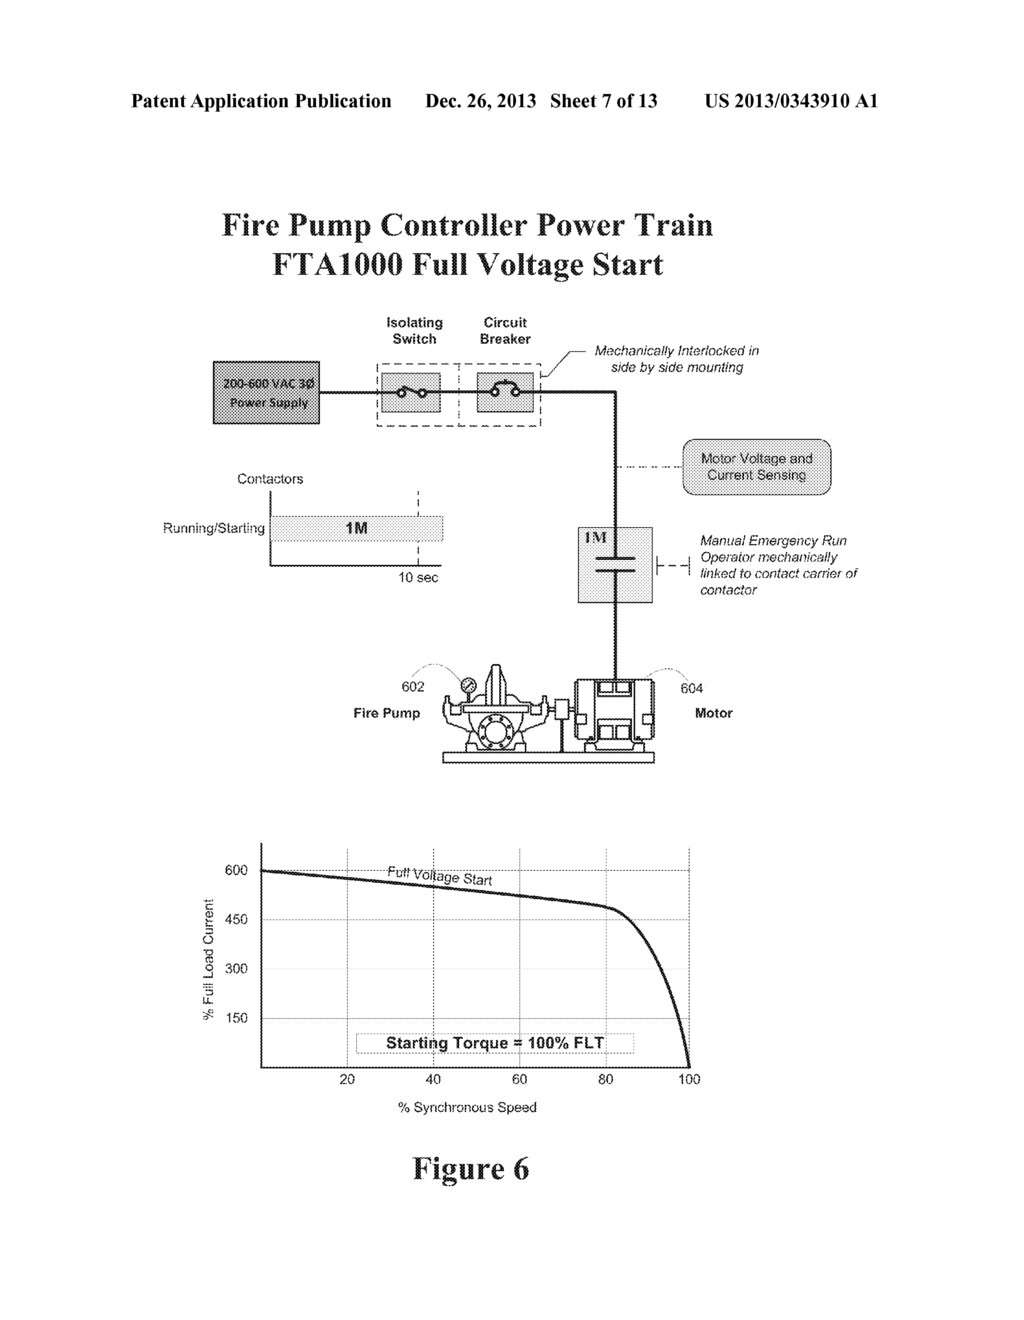 100 Fire Pump Diagram Web About Wiring Engine Centrifugal Cutaway Methods And Systems For Monitoring A Power Supply Rh Patentsencyclopedia Com Apparatus Waterous